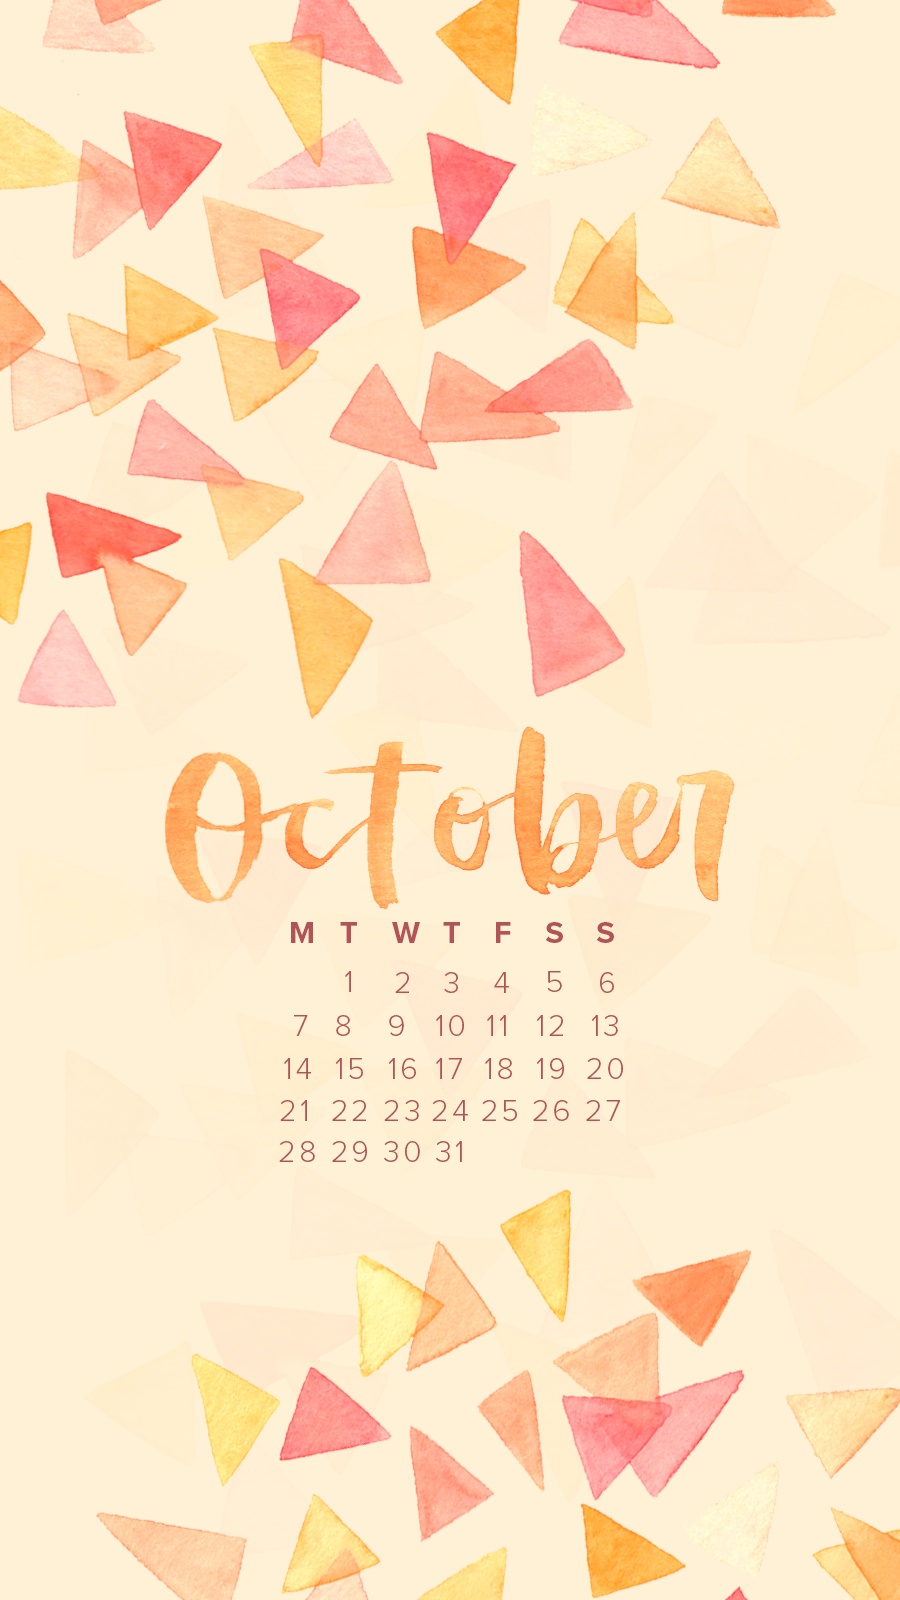 Phone wallpaper_October.png